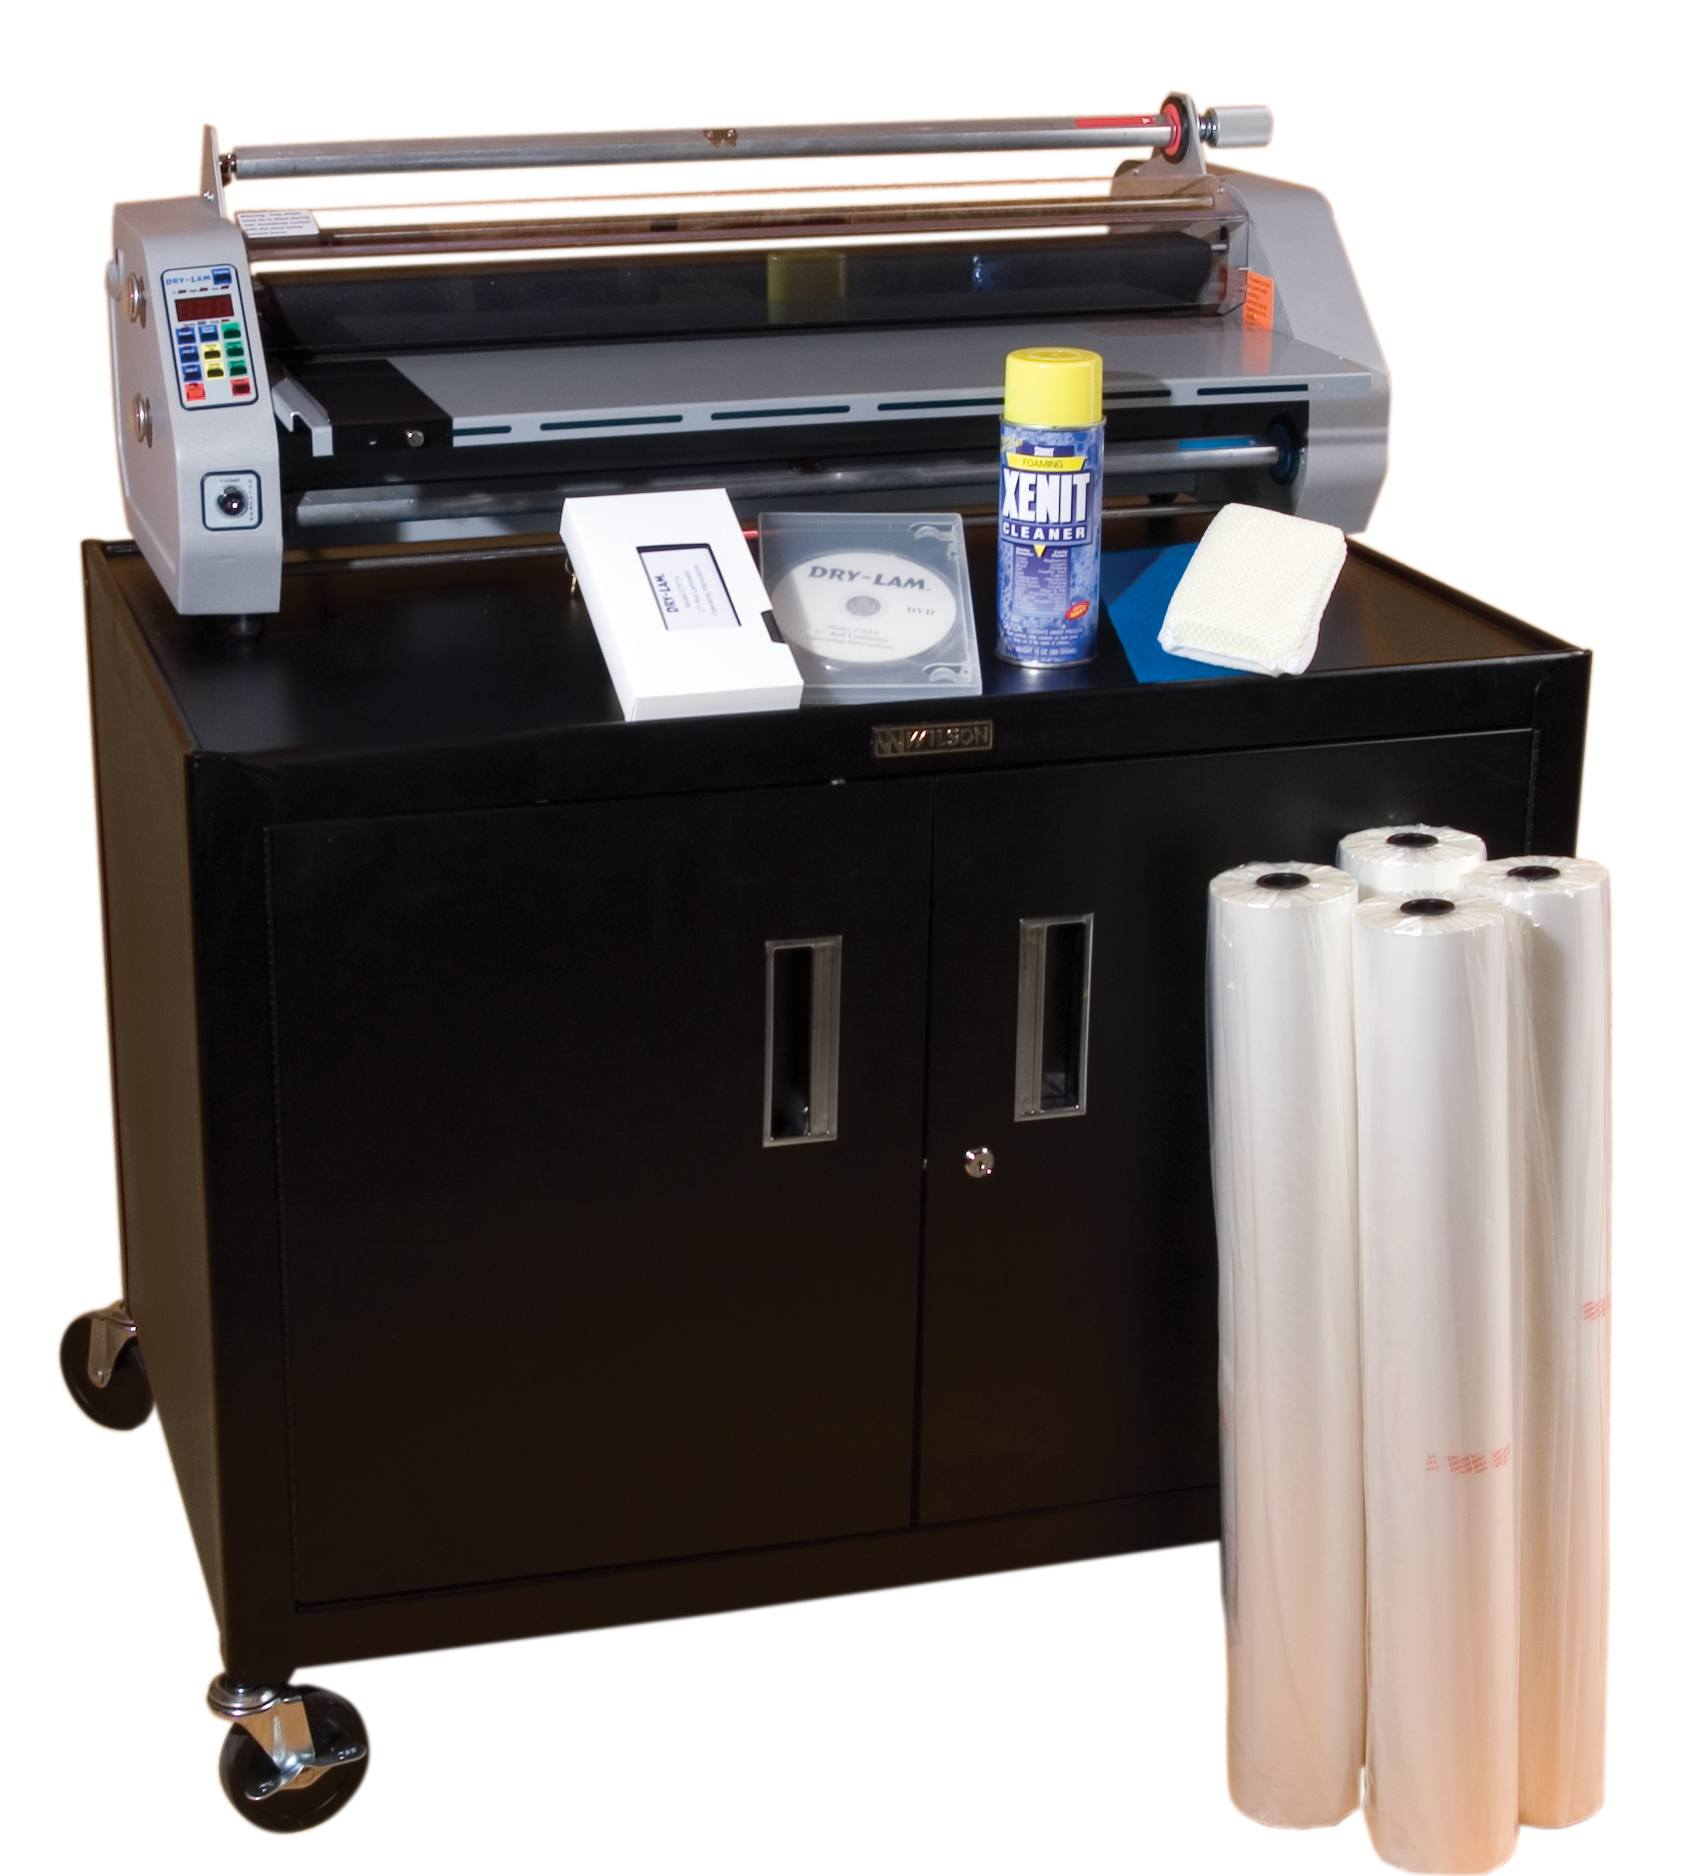 "School-Lam SL27 System – 27"" Laminating System with Cart and Supplies"